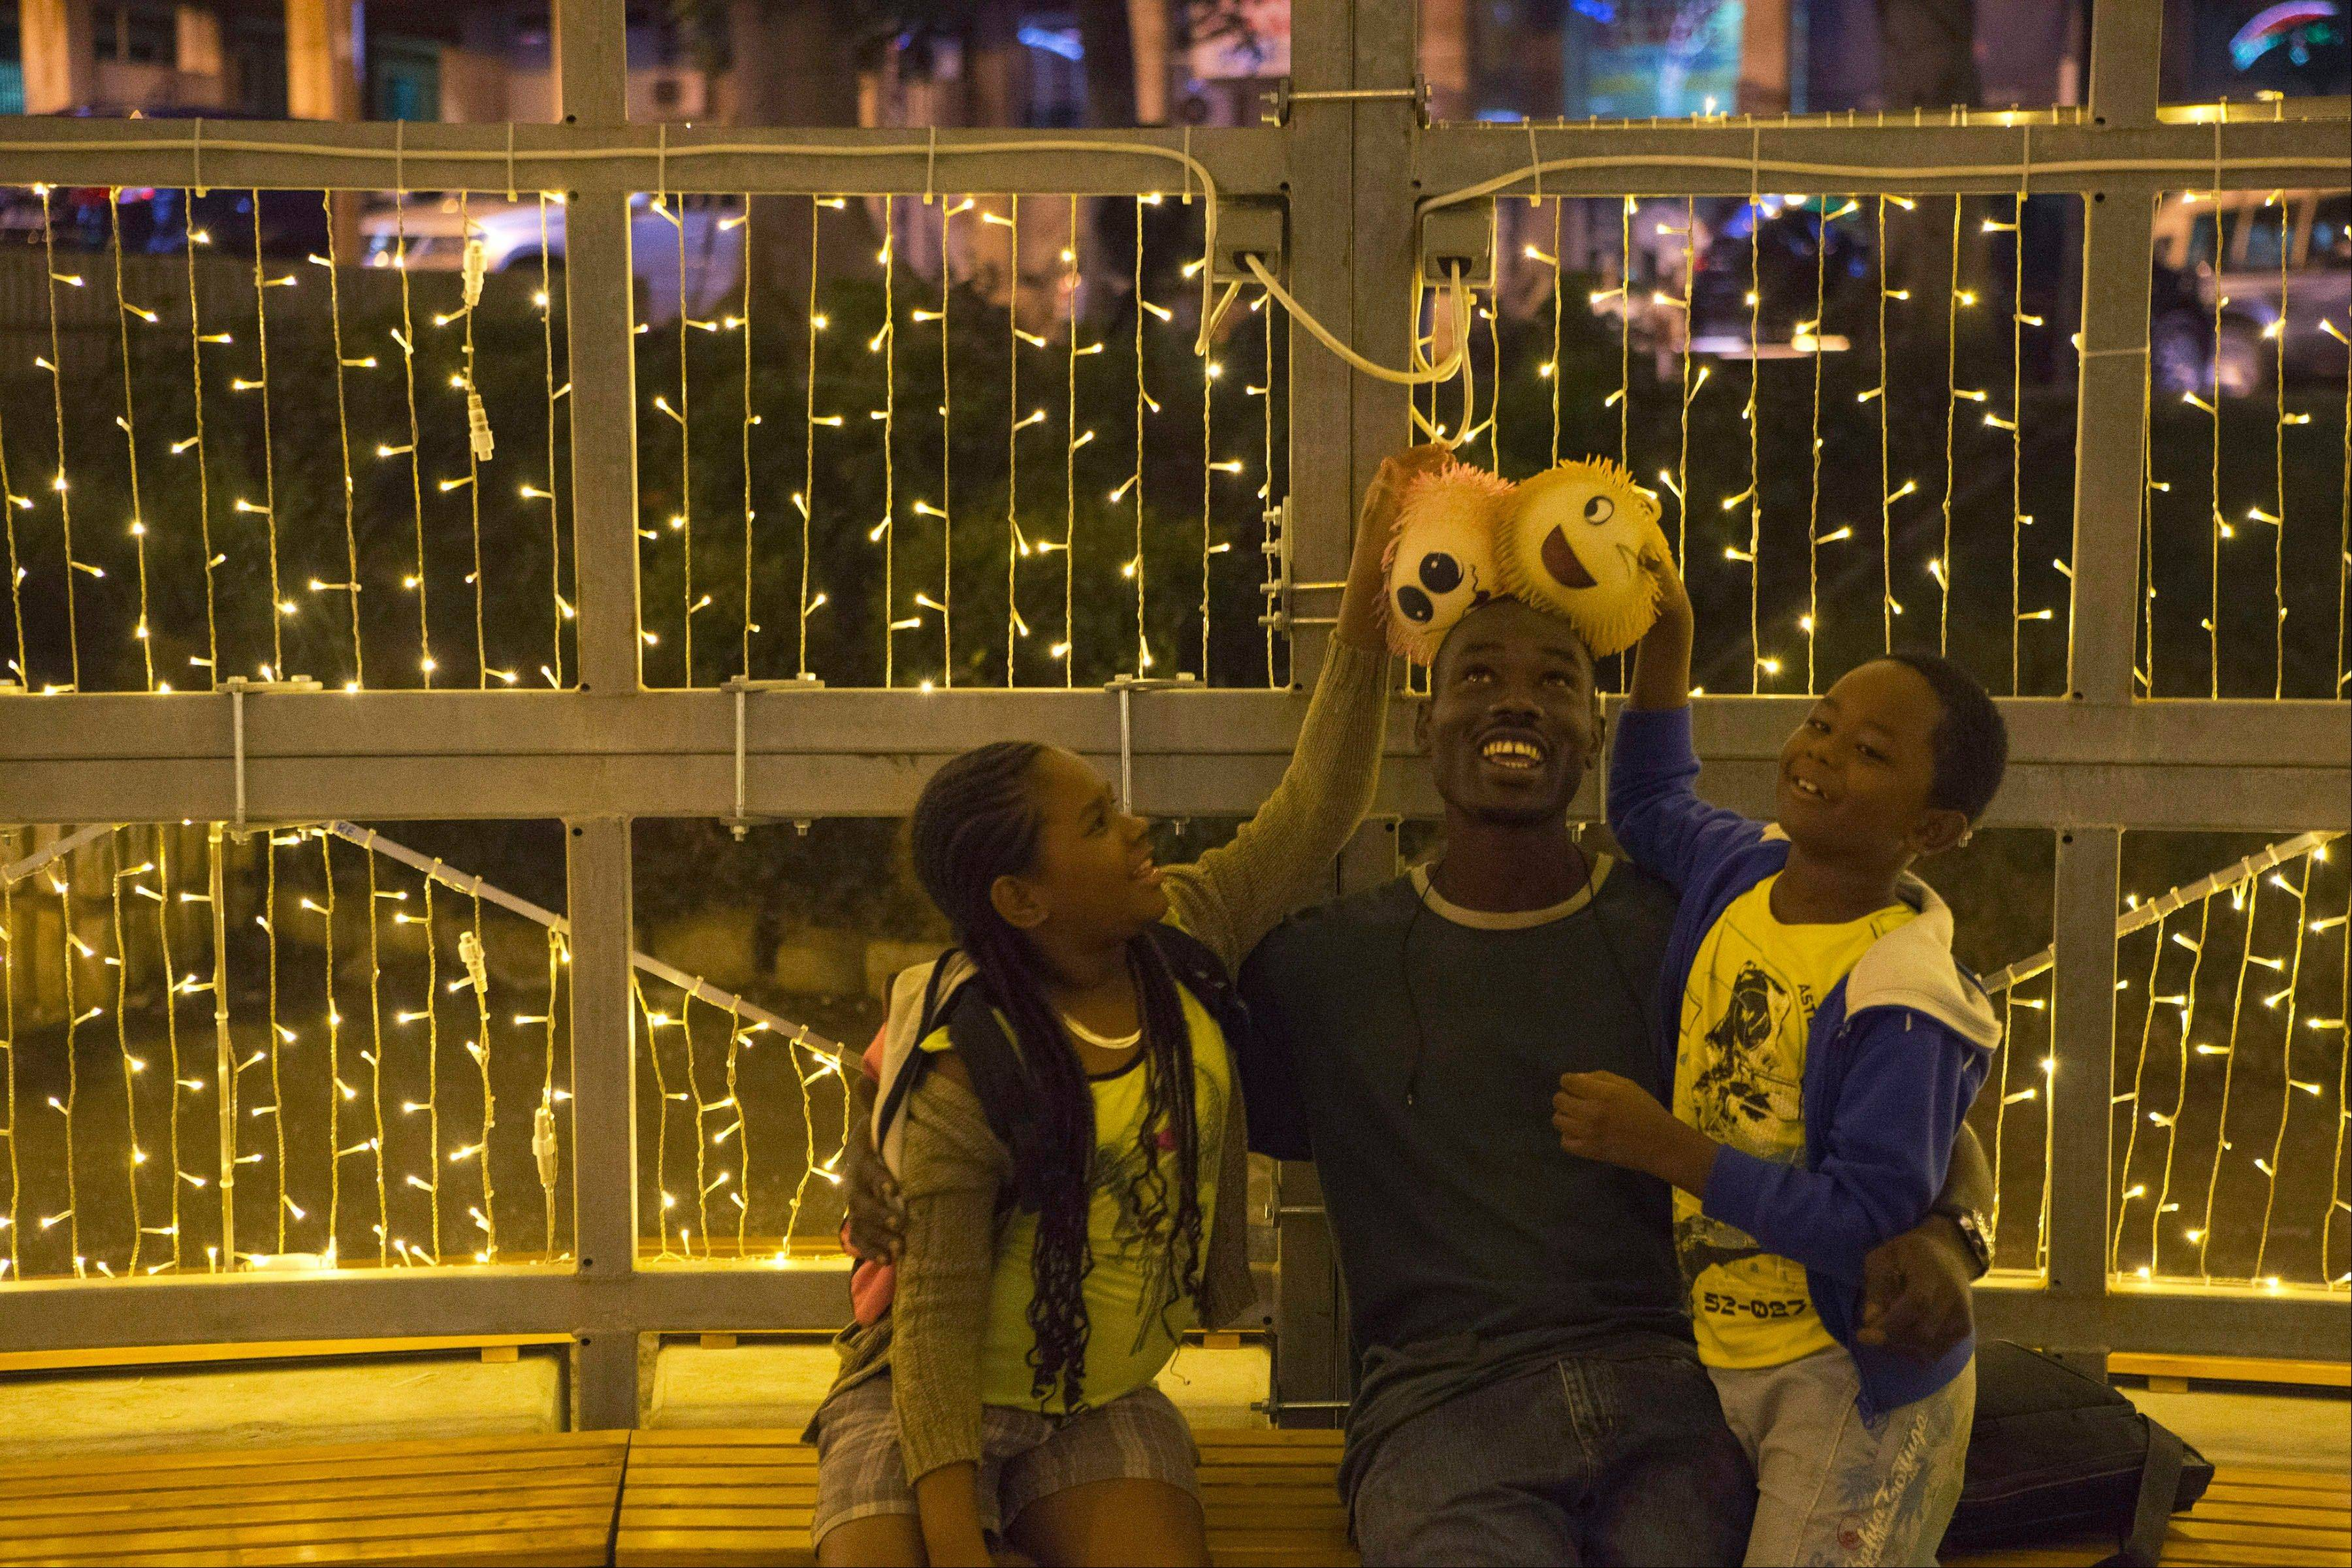 Kids play with their uncle with newly bought Christmas toys, as they visit a display of lights in central Dakar, Senegal. As Christmas approaches in mostly Muslim Senegal, vendors ply the streets selling tinsel, artificial trees, and inflatable Santas, and the main boulevards are all aglow in holiday lights. Senegal, a moderate country along Africa�s western coast, has long been a place where Christians and Muslims coexist peacefully and share in each other�s holidays.